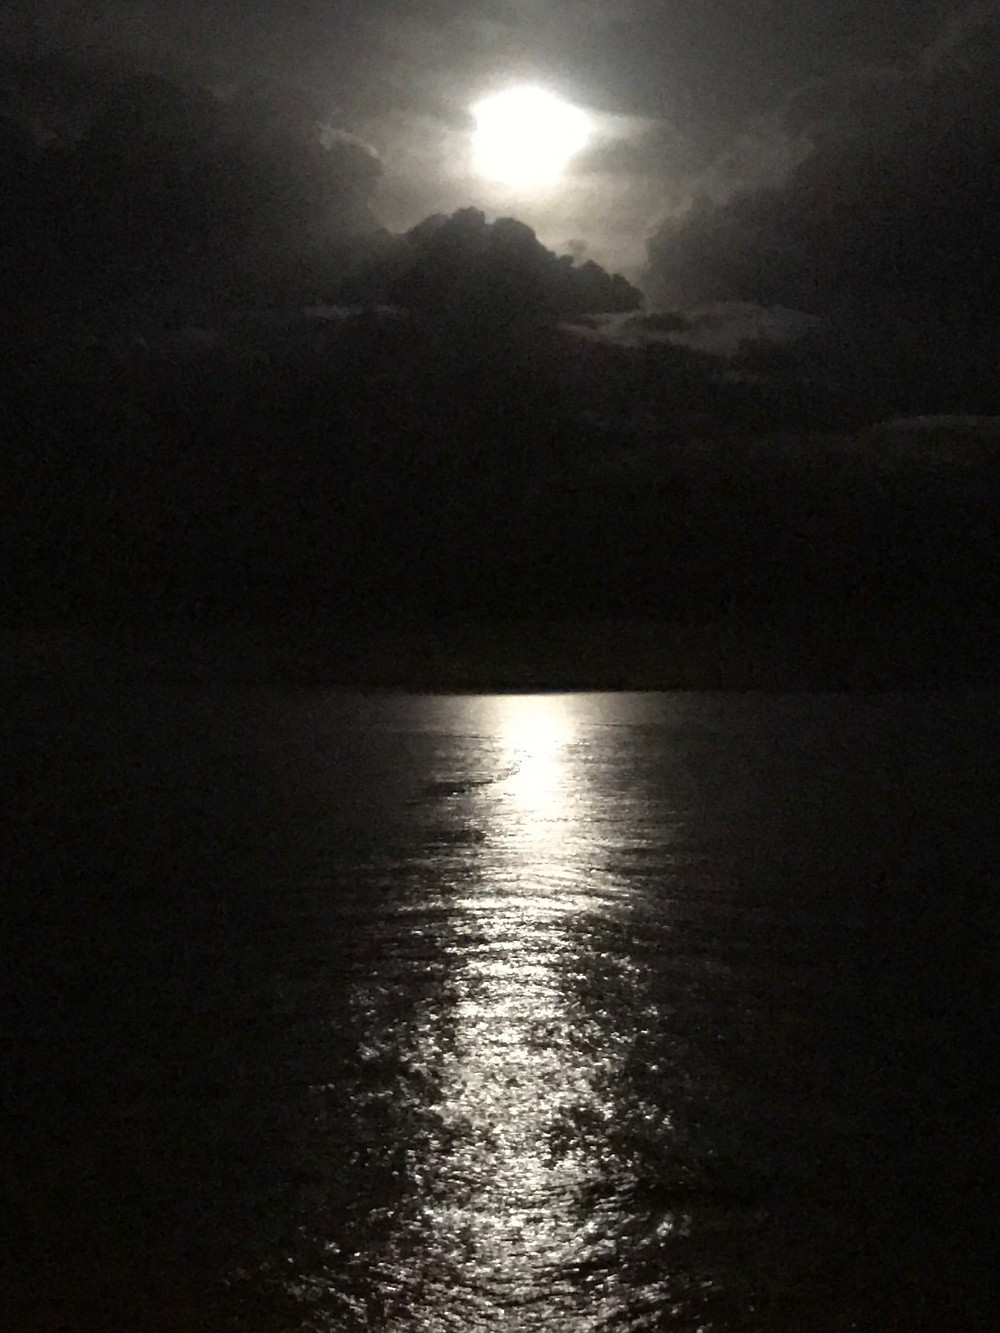 Moon reflected on the ocean